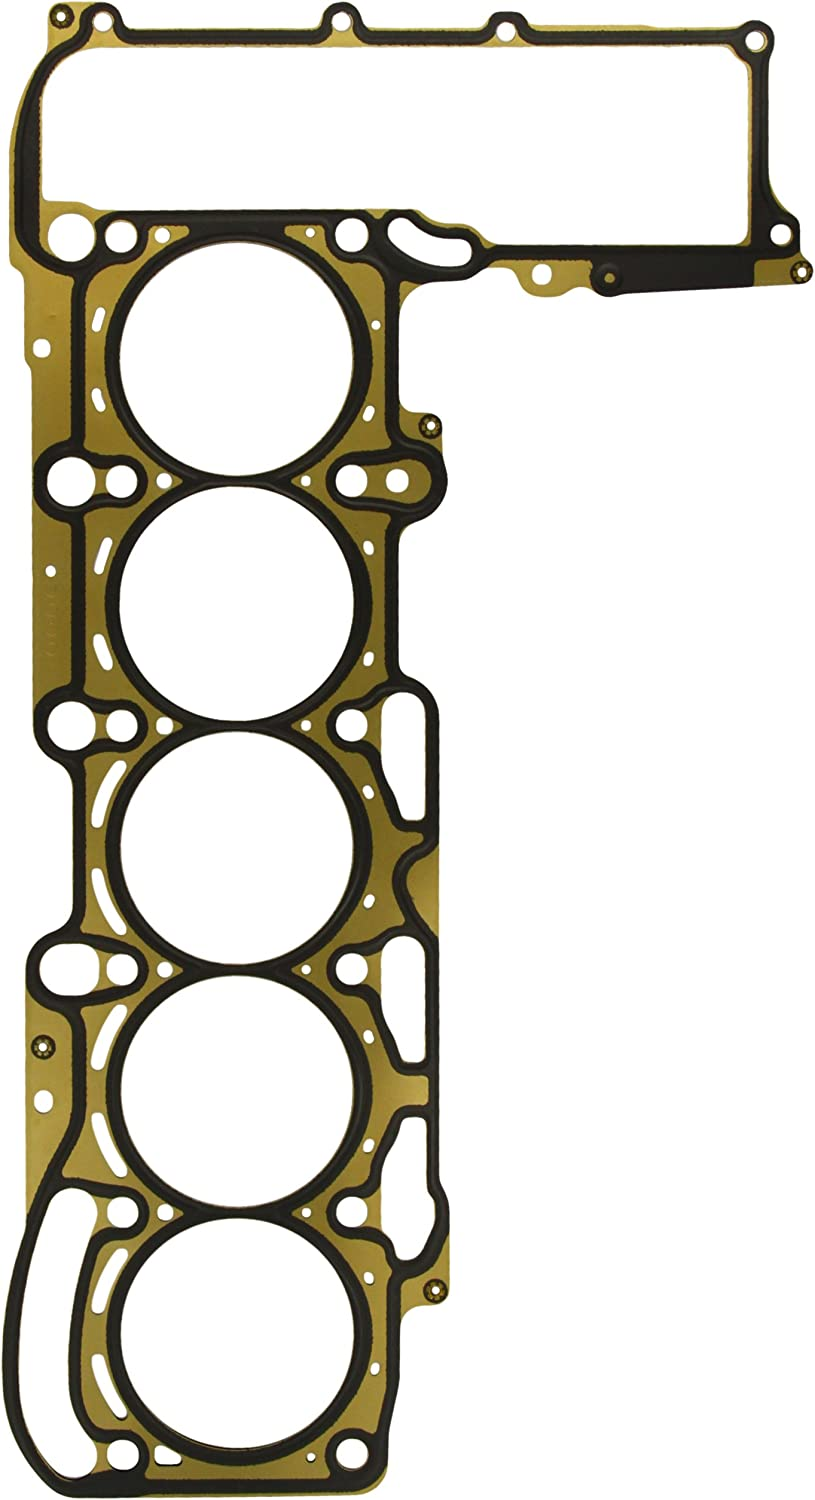 Elring 535.900 Gasket Popular shop is Year-end annual account the lowest price challenge cylinder head